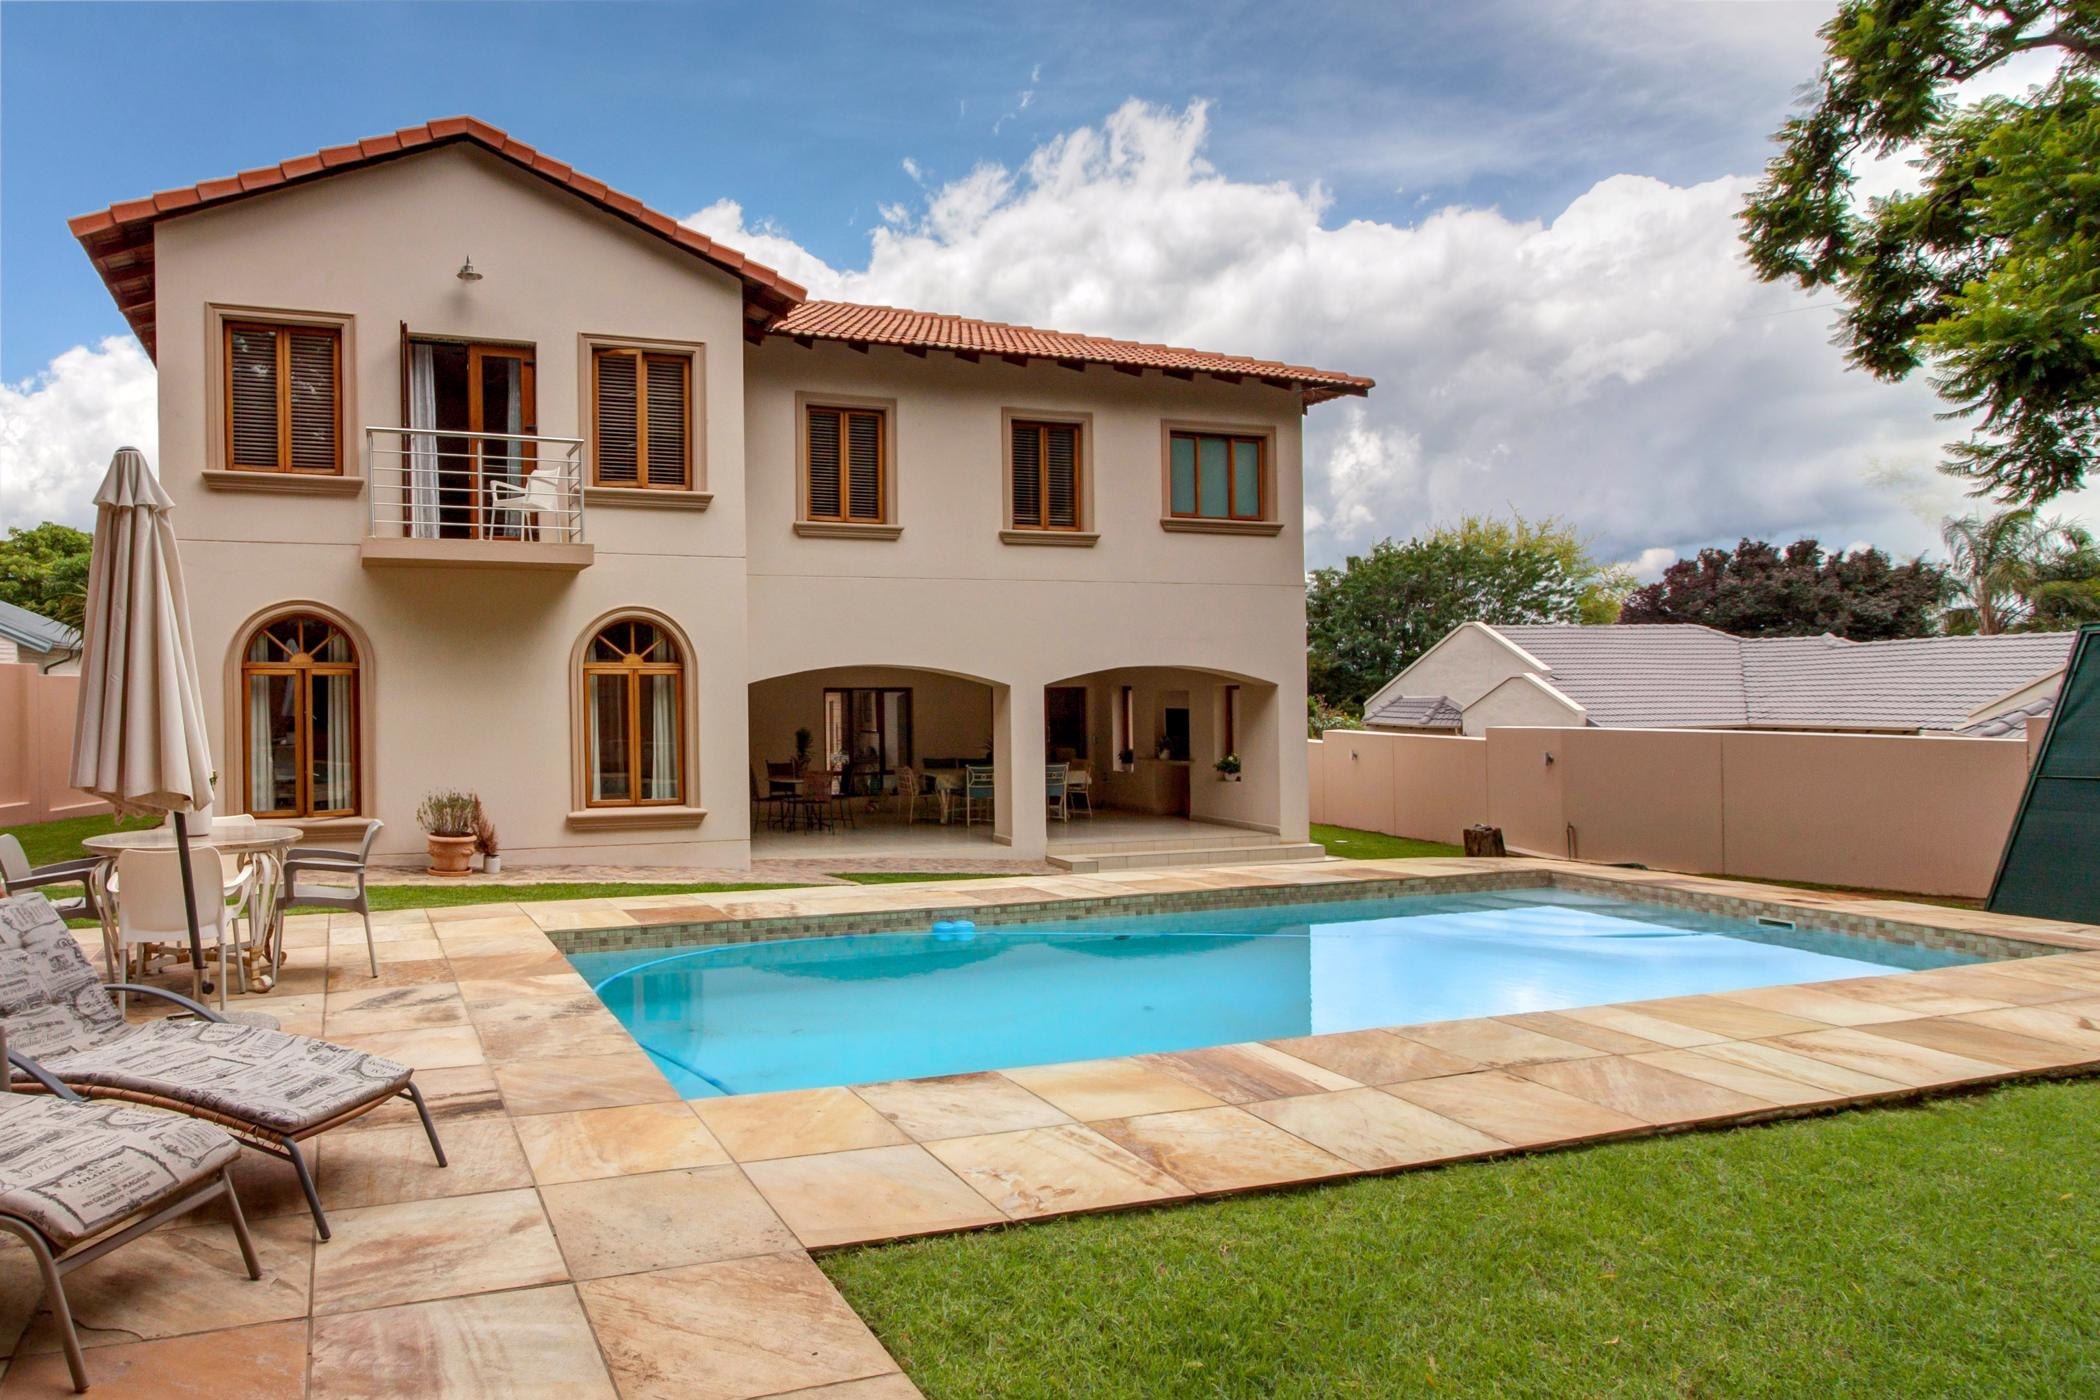 3 bedroom house for sale in Bryanston